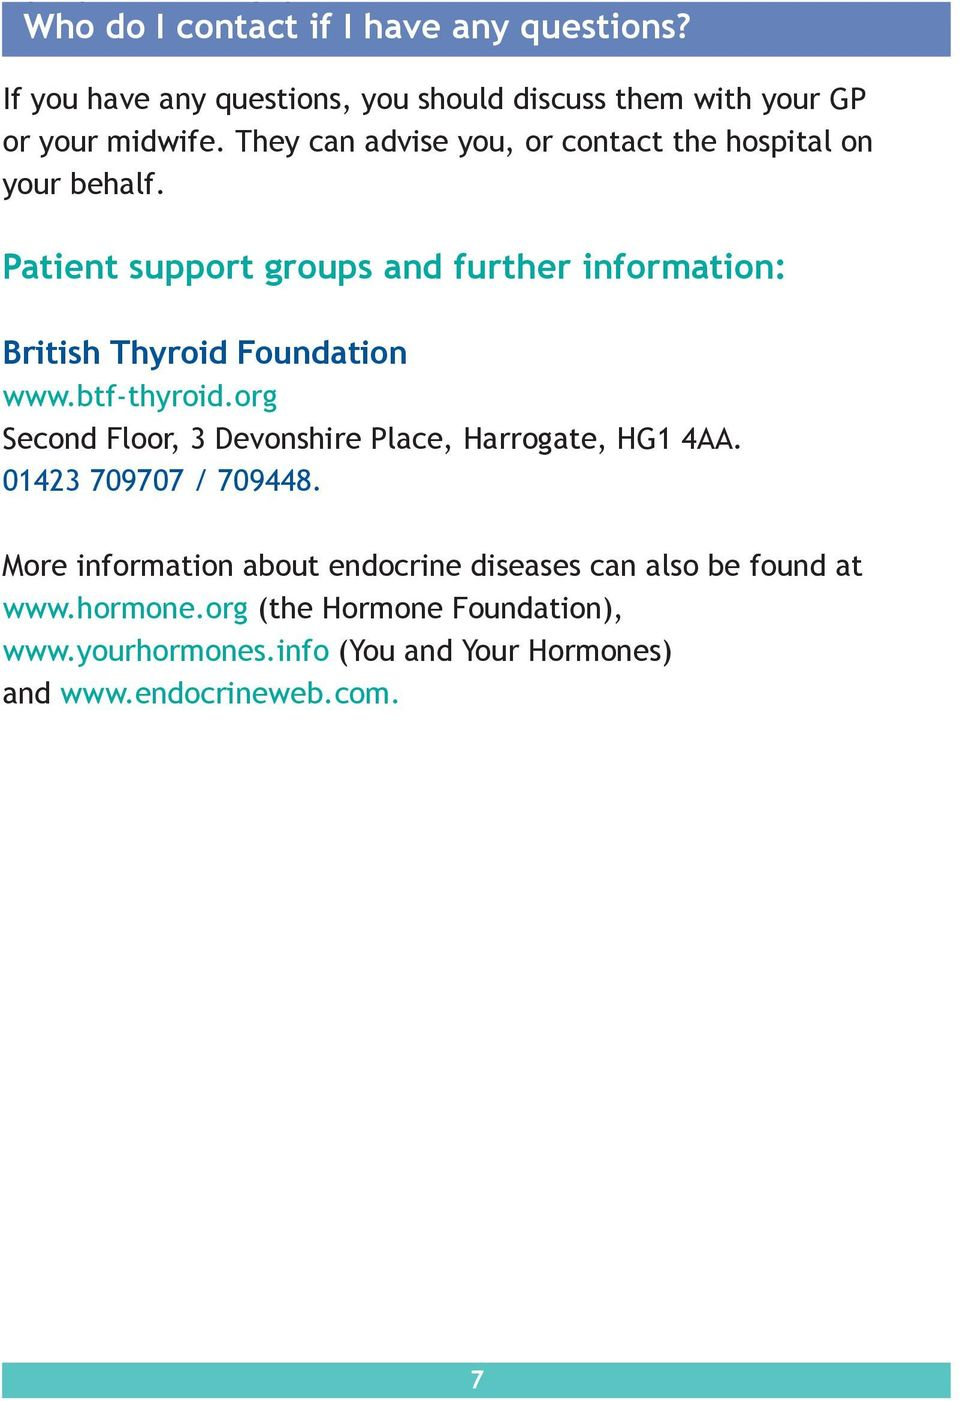 Patient support groups and further information: British Thyroid Foundation www.btf-thyroid.